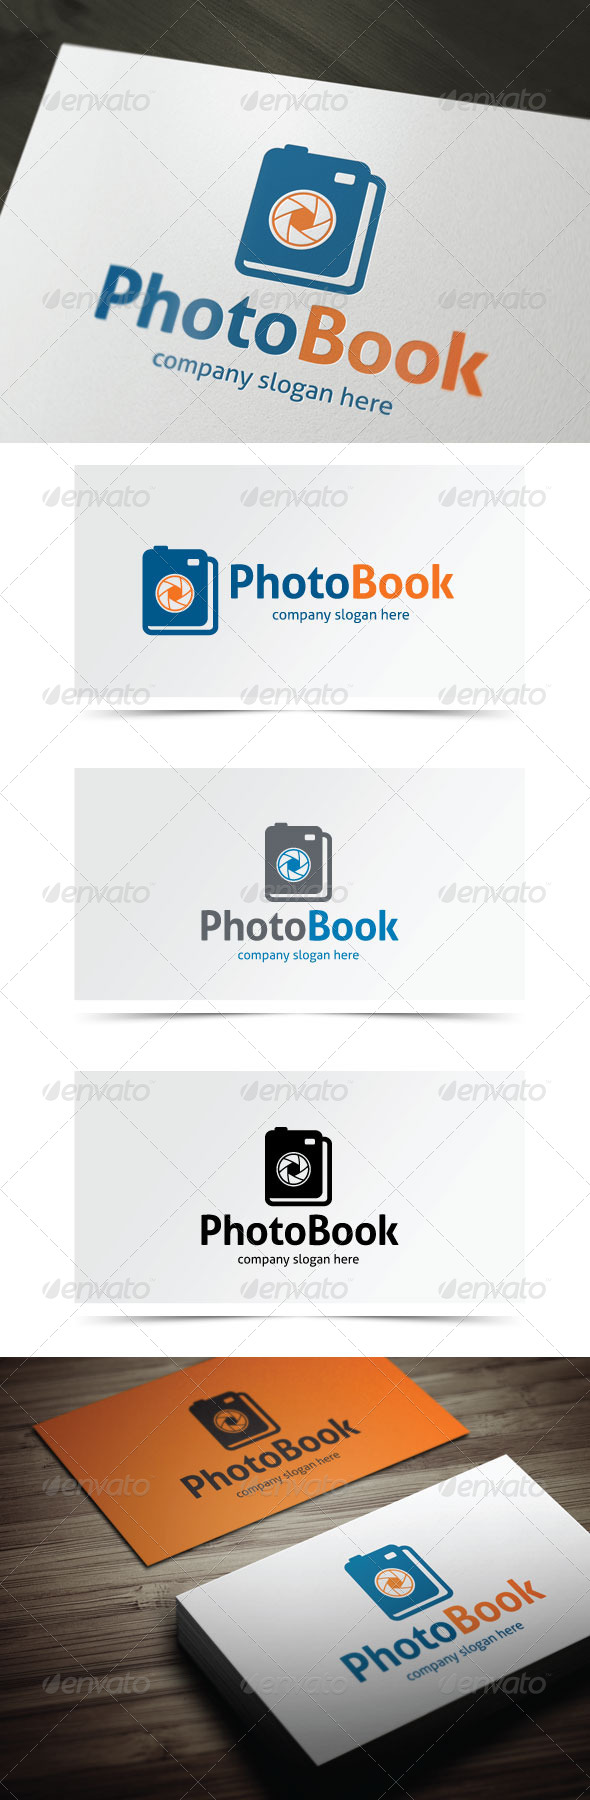 GraphicRiver Photo Book 5589566